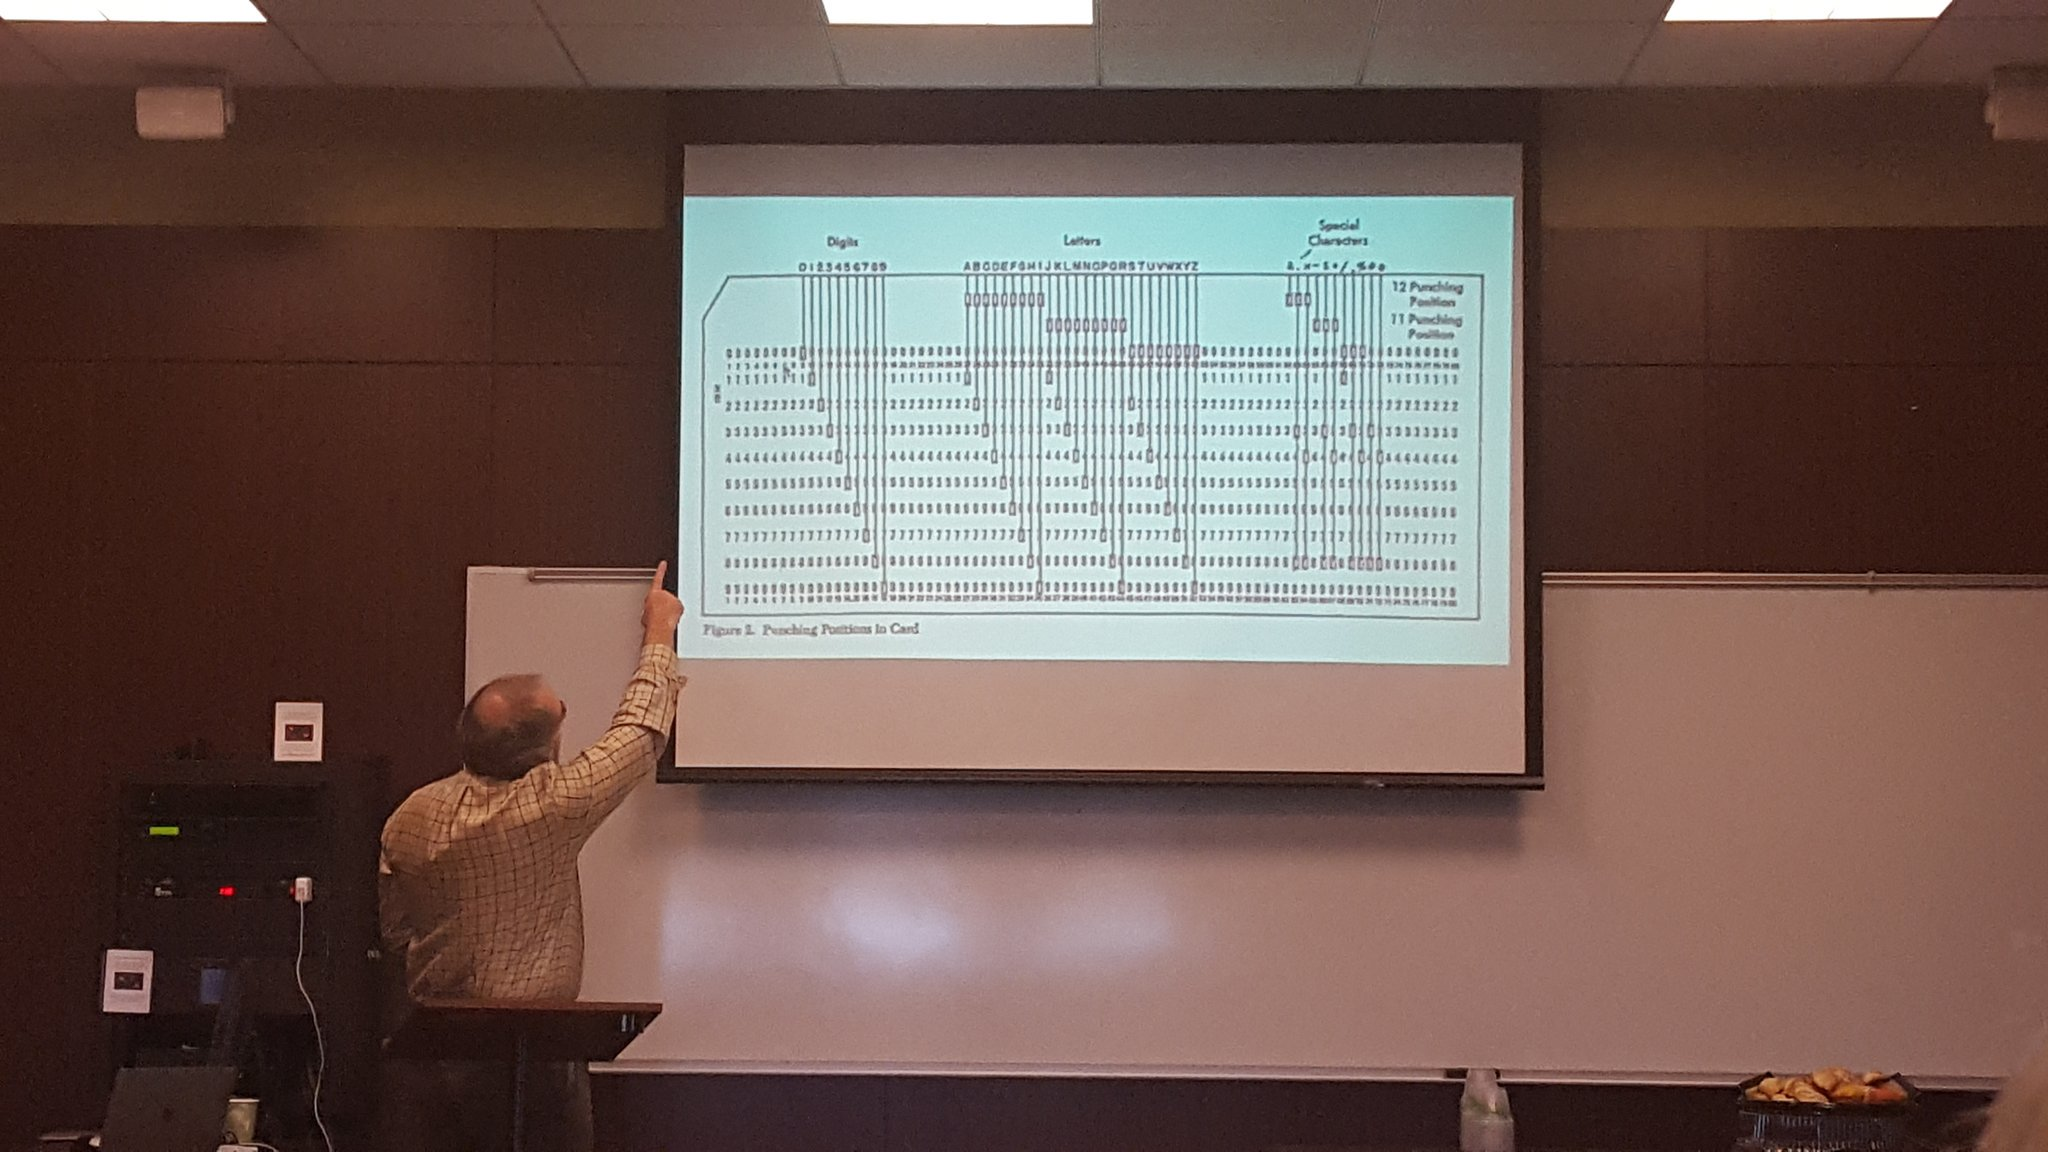 .@GeoffRockwell at Loyola DH conference speaking on 1950s textual analytics using punchcards. Eye-opening! https://t.co/tEpmUKNGF5